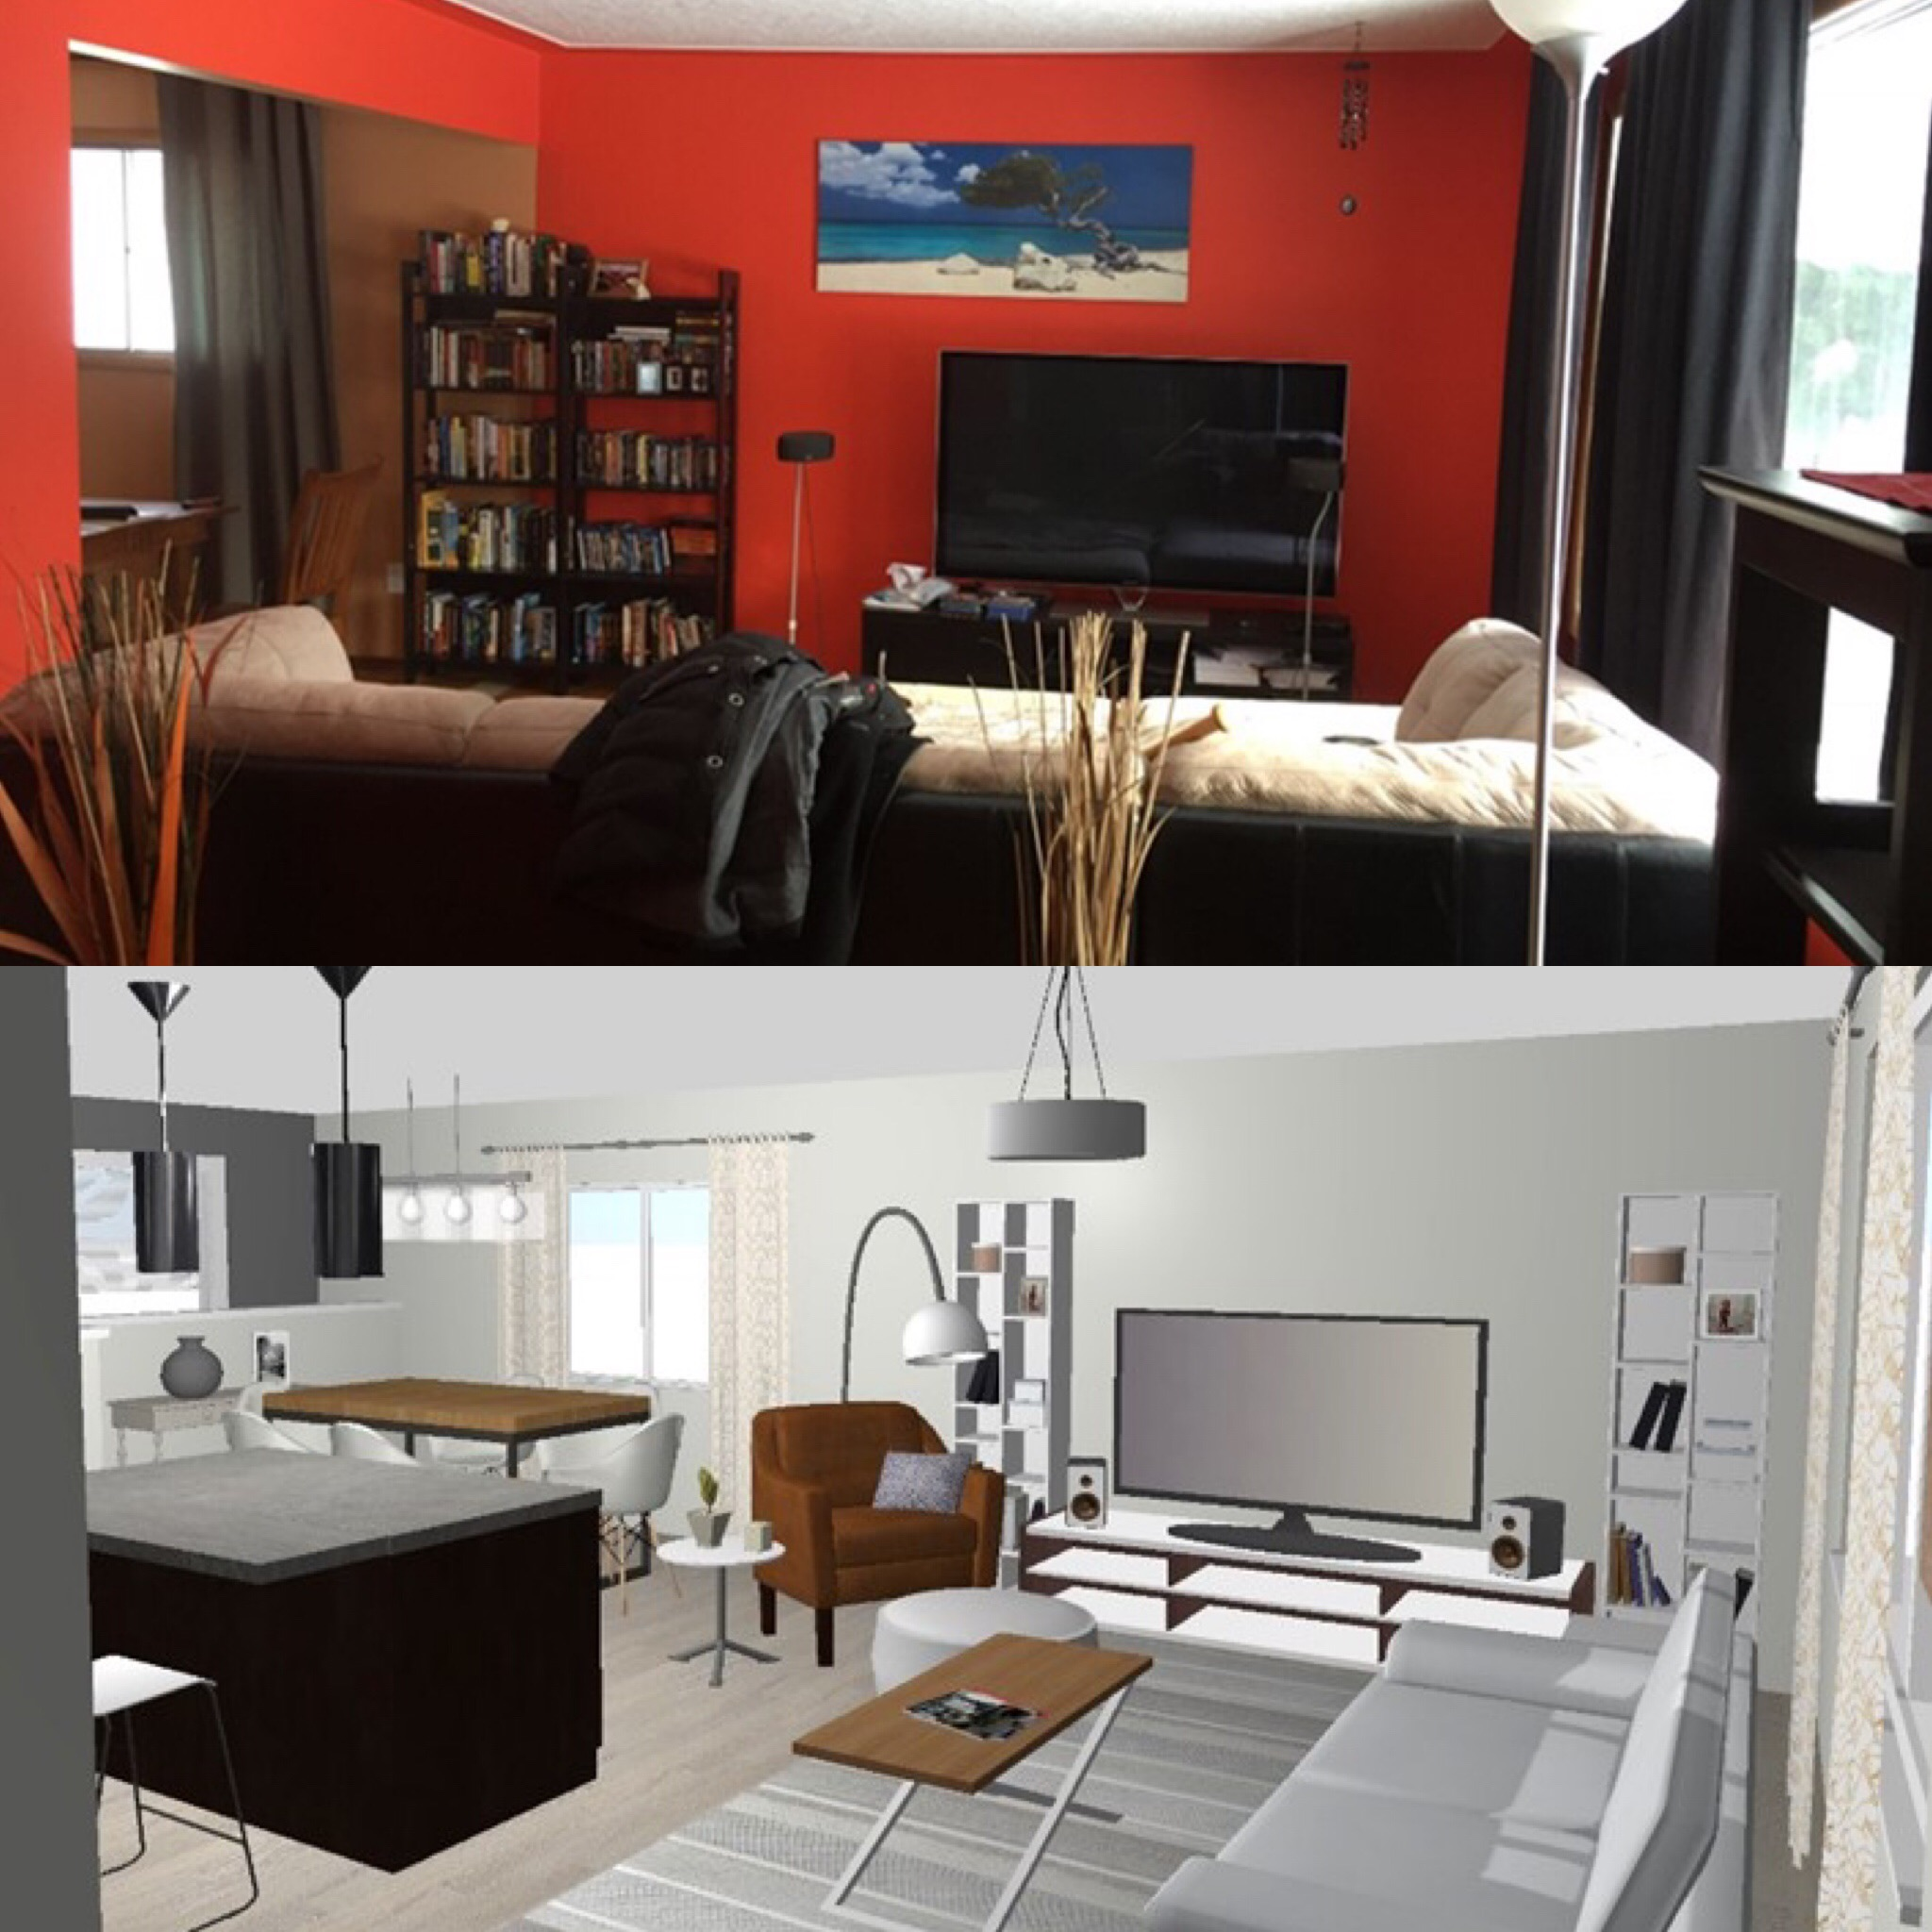 Let Buyers See the Potential - We can develop a new floor plan and 3D image of what a space could look like when updated. Help potential buyers see the finished space and include the new floor plan and 3D image in your online listing and display at your upcoming open house.